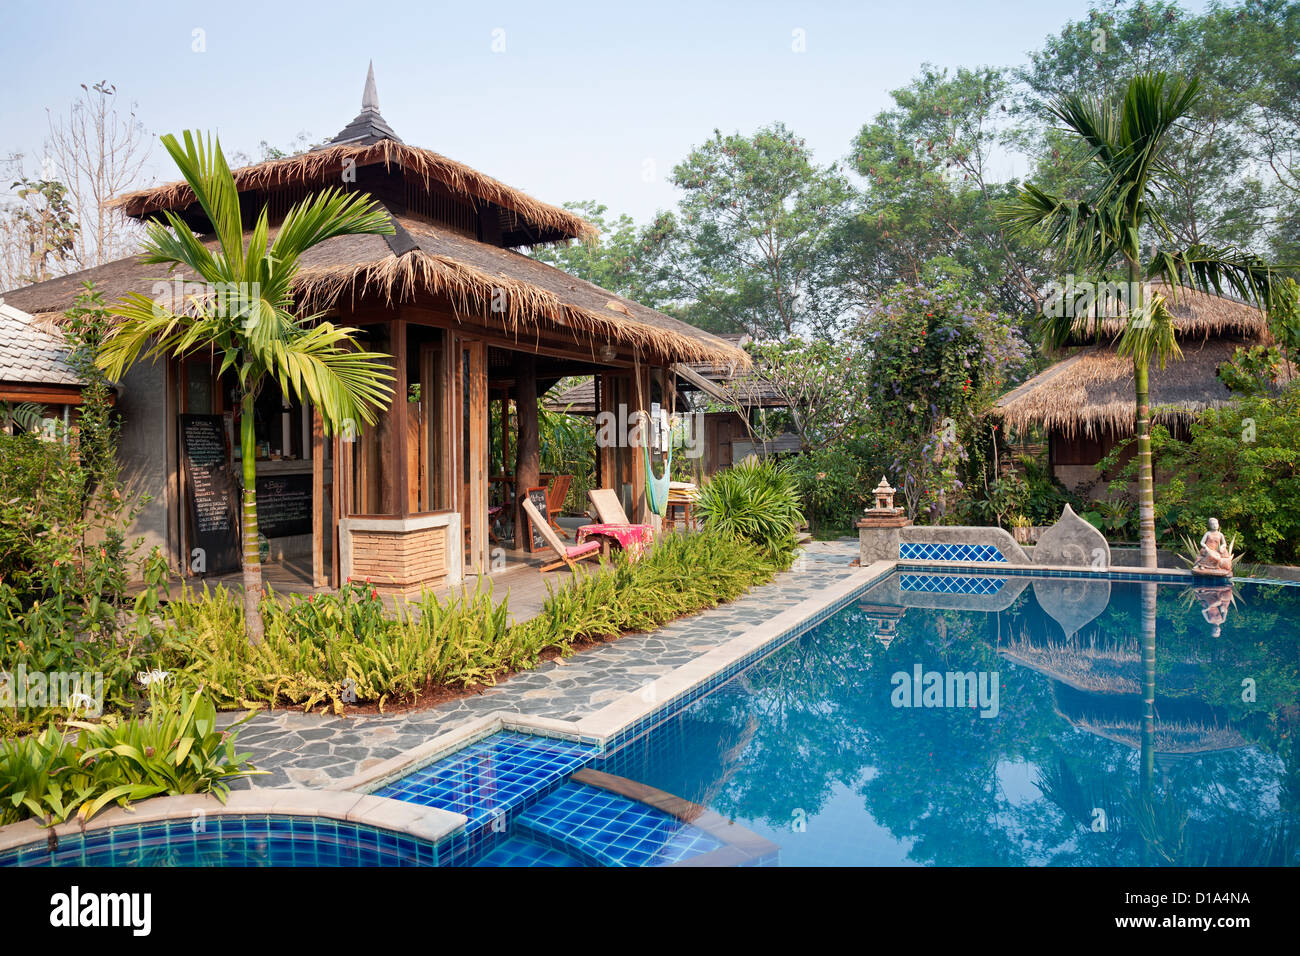 u0027pai cham guest house with swimming pool mae hong son province